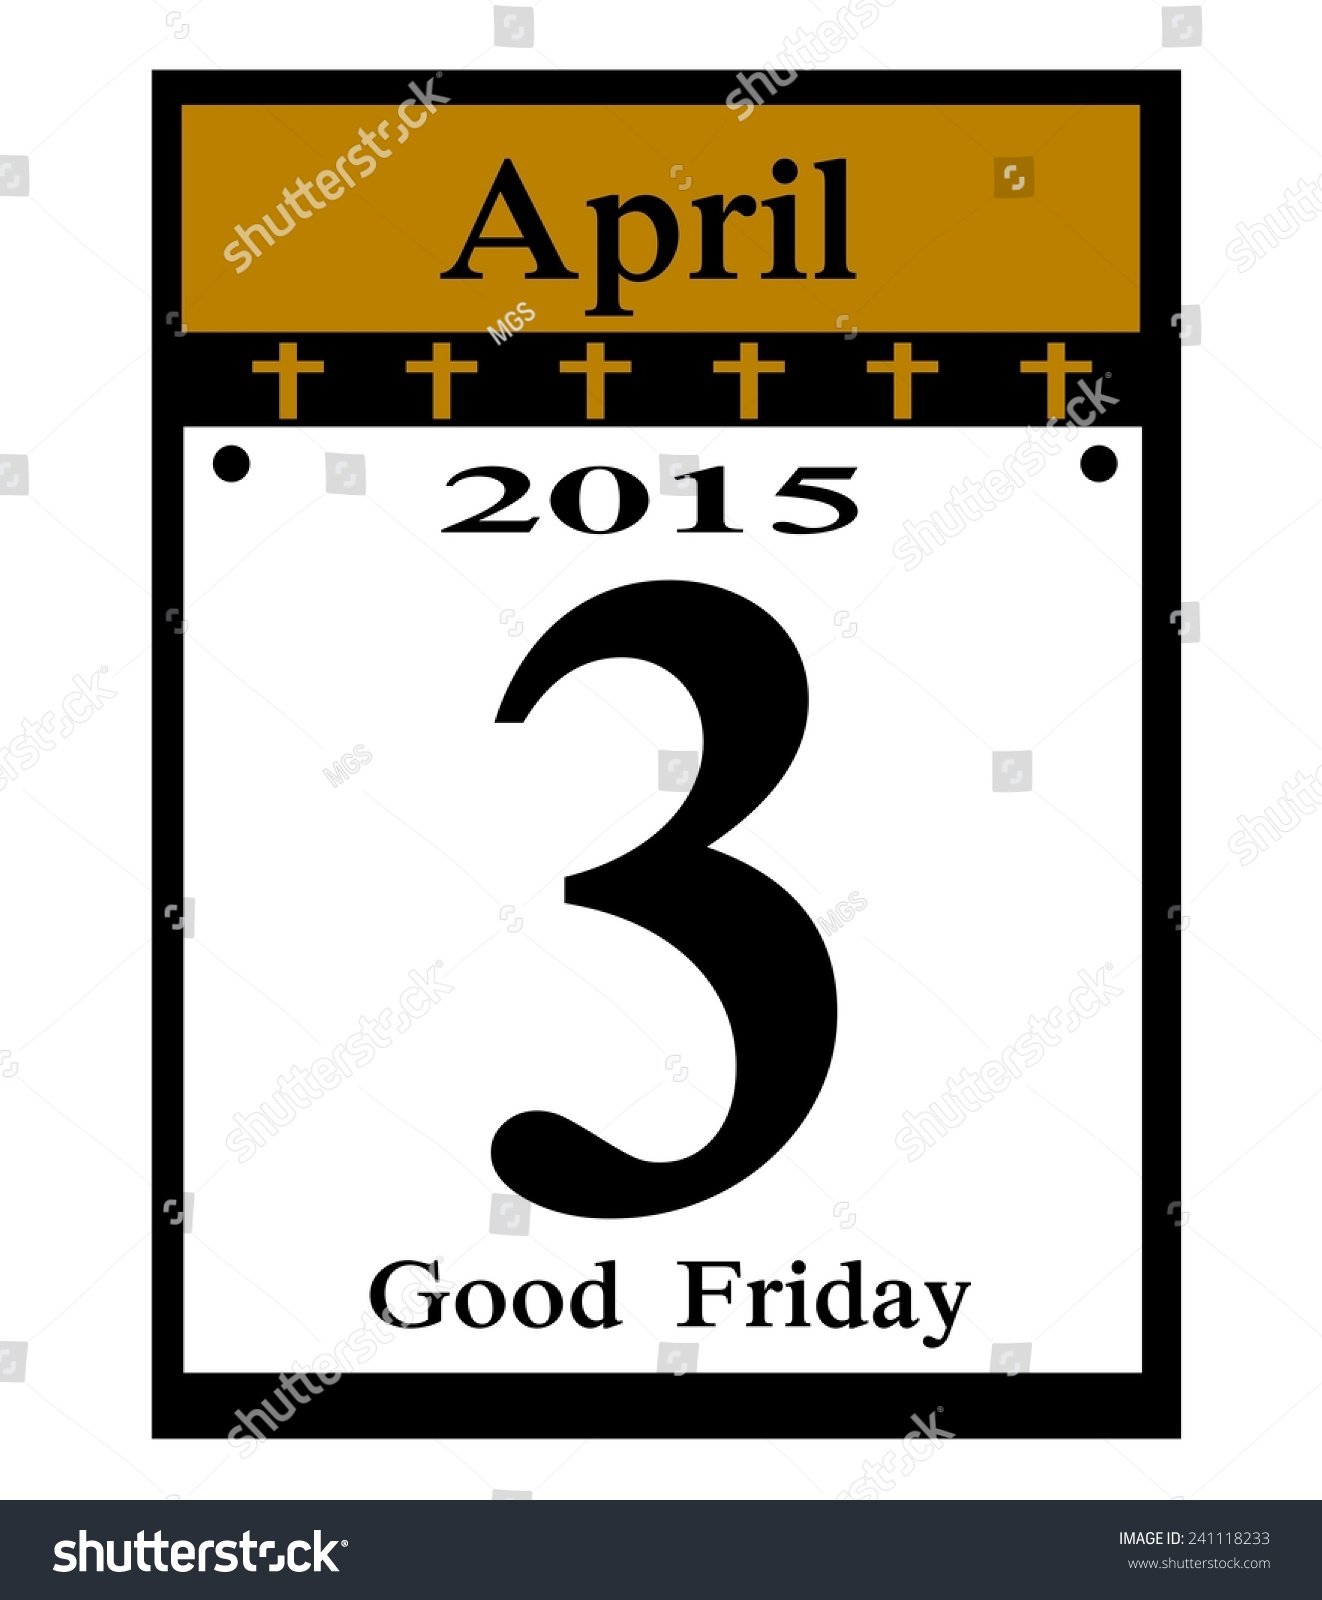 Calendar Good Friday : Good friday calendar date icon stock photo